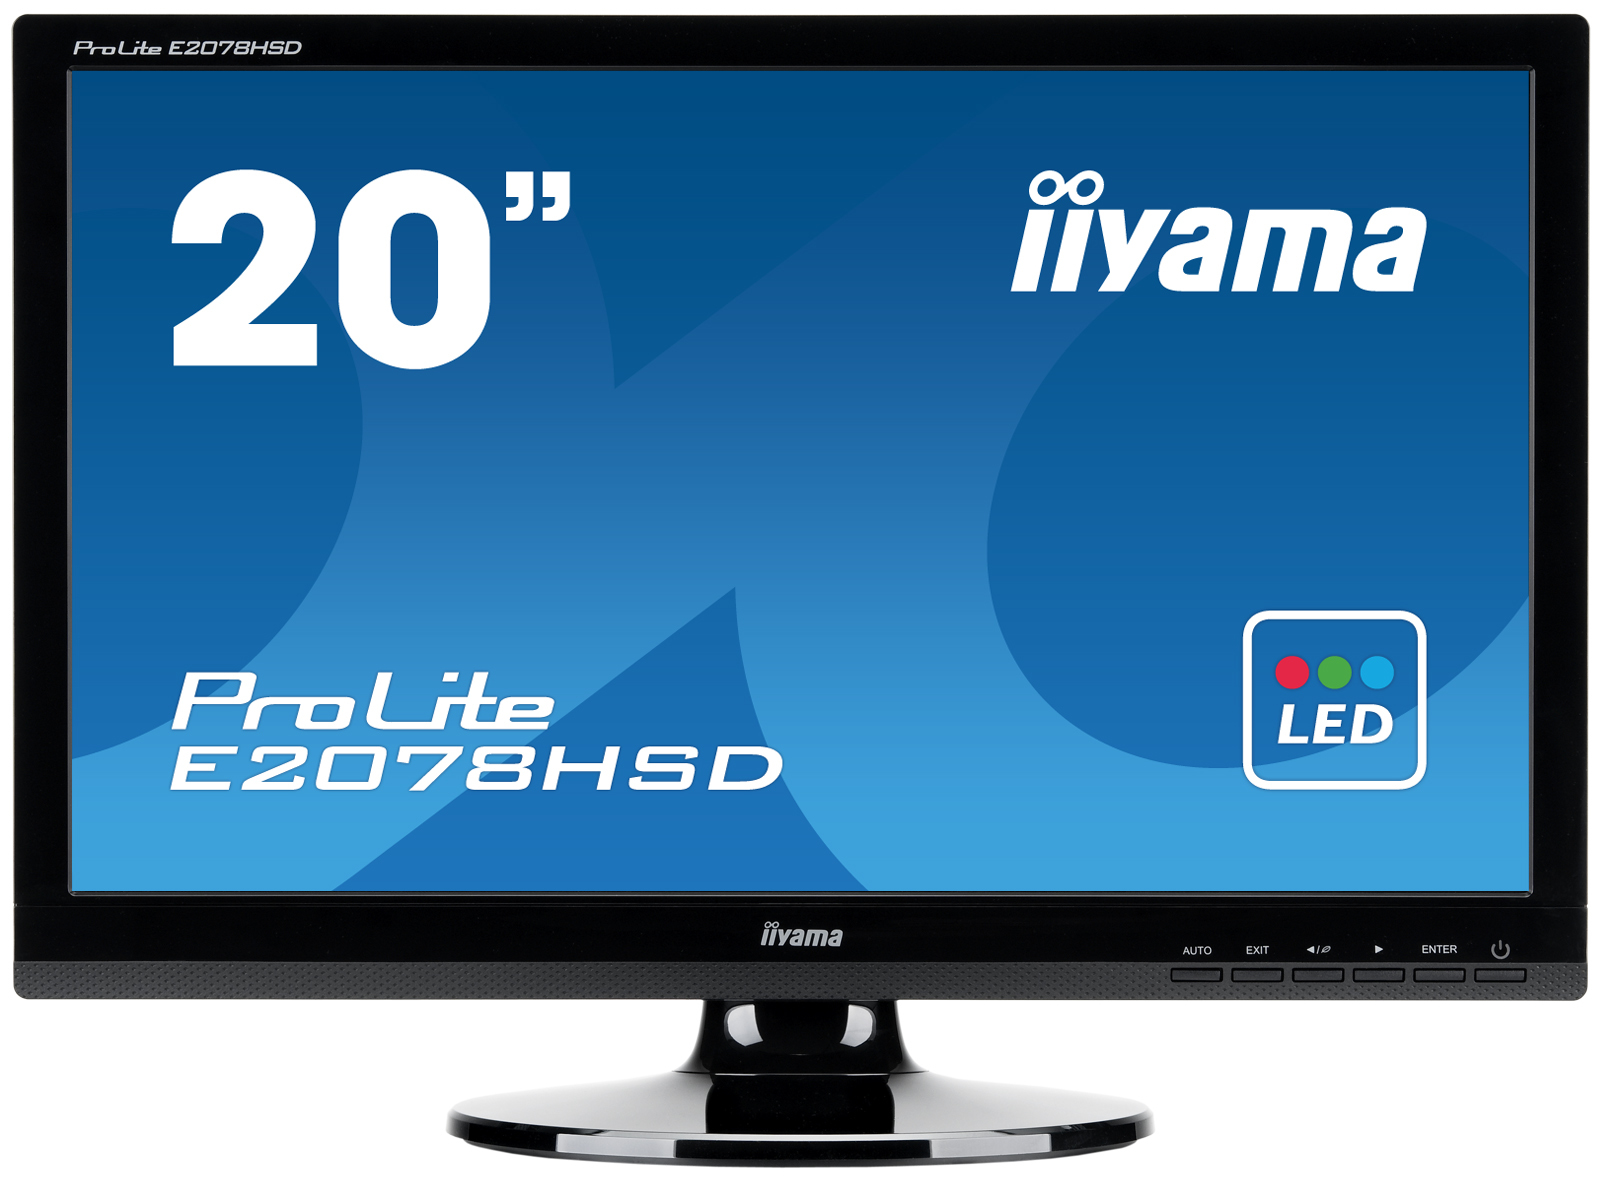 E2078HSD/20&amp;quot;LED 16:9 1600x900 DVI MM Bk